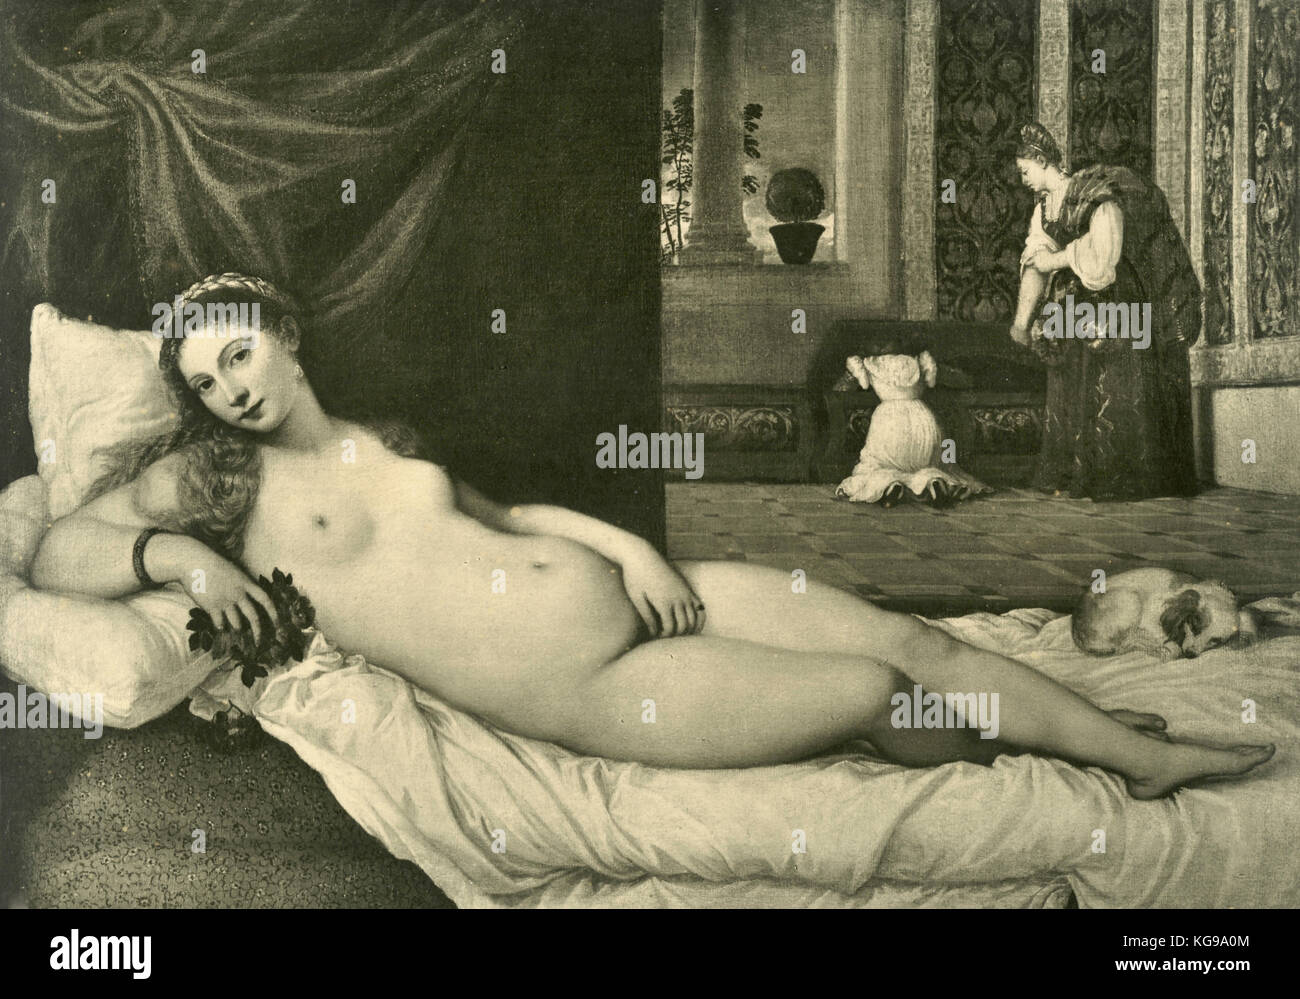 Venus or the lover of the Duke of Urbino, painted by Titian - Stock Image